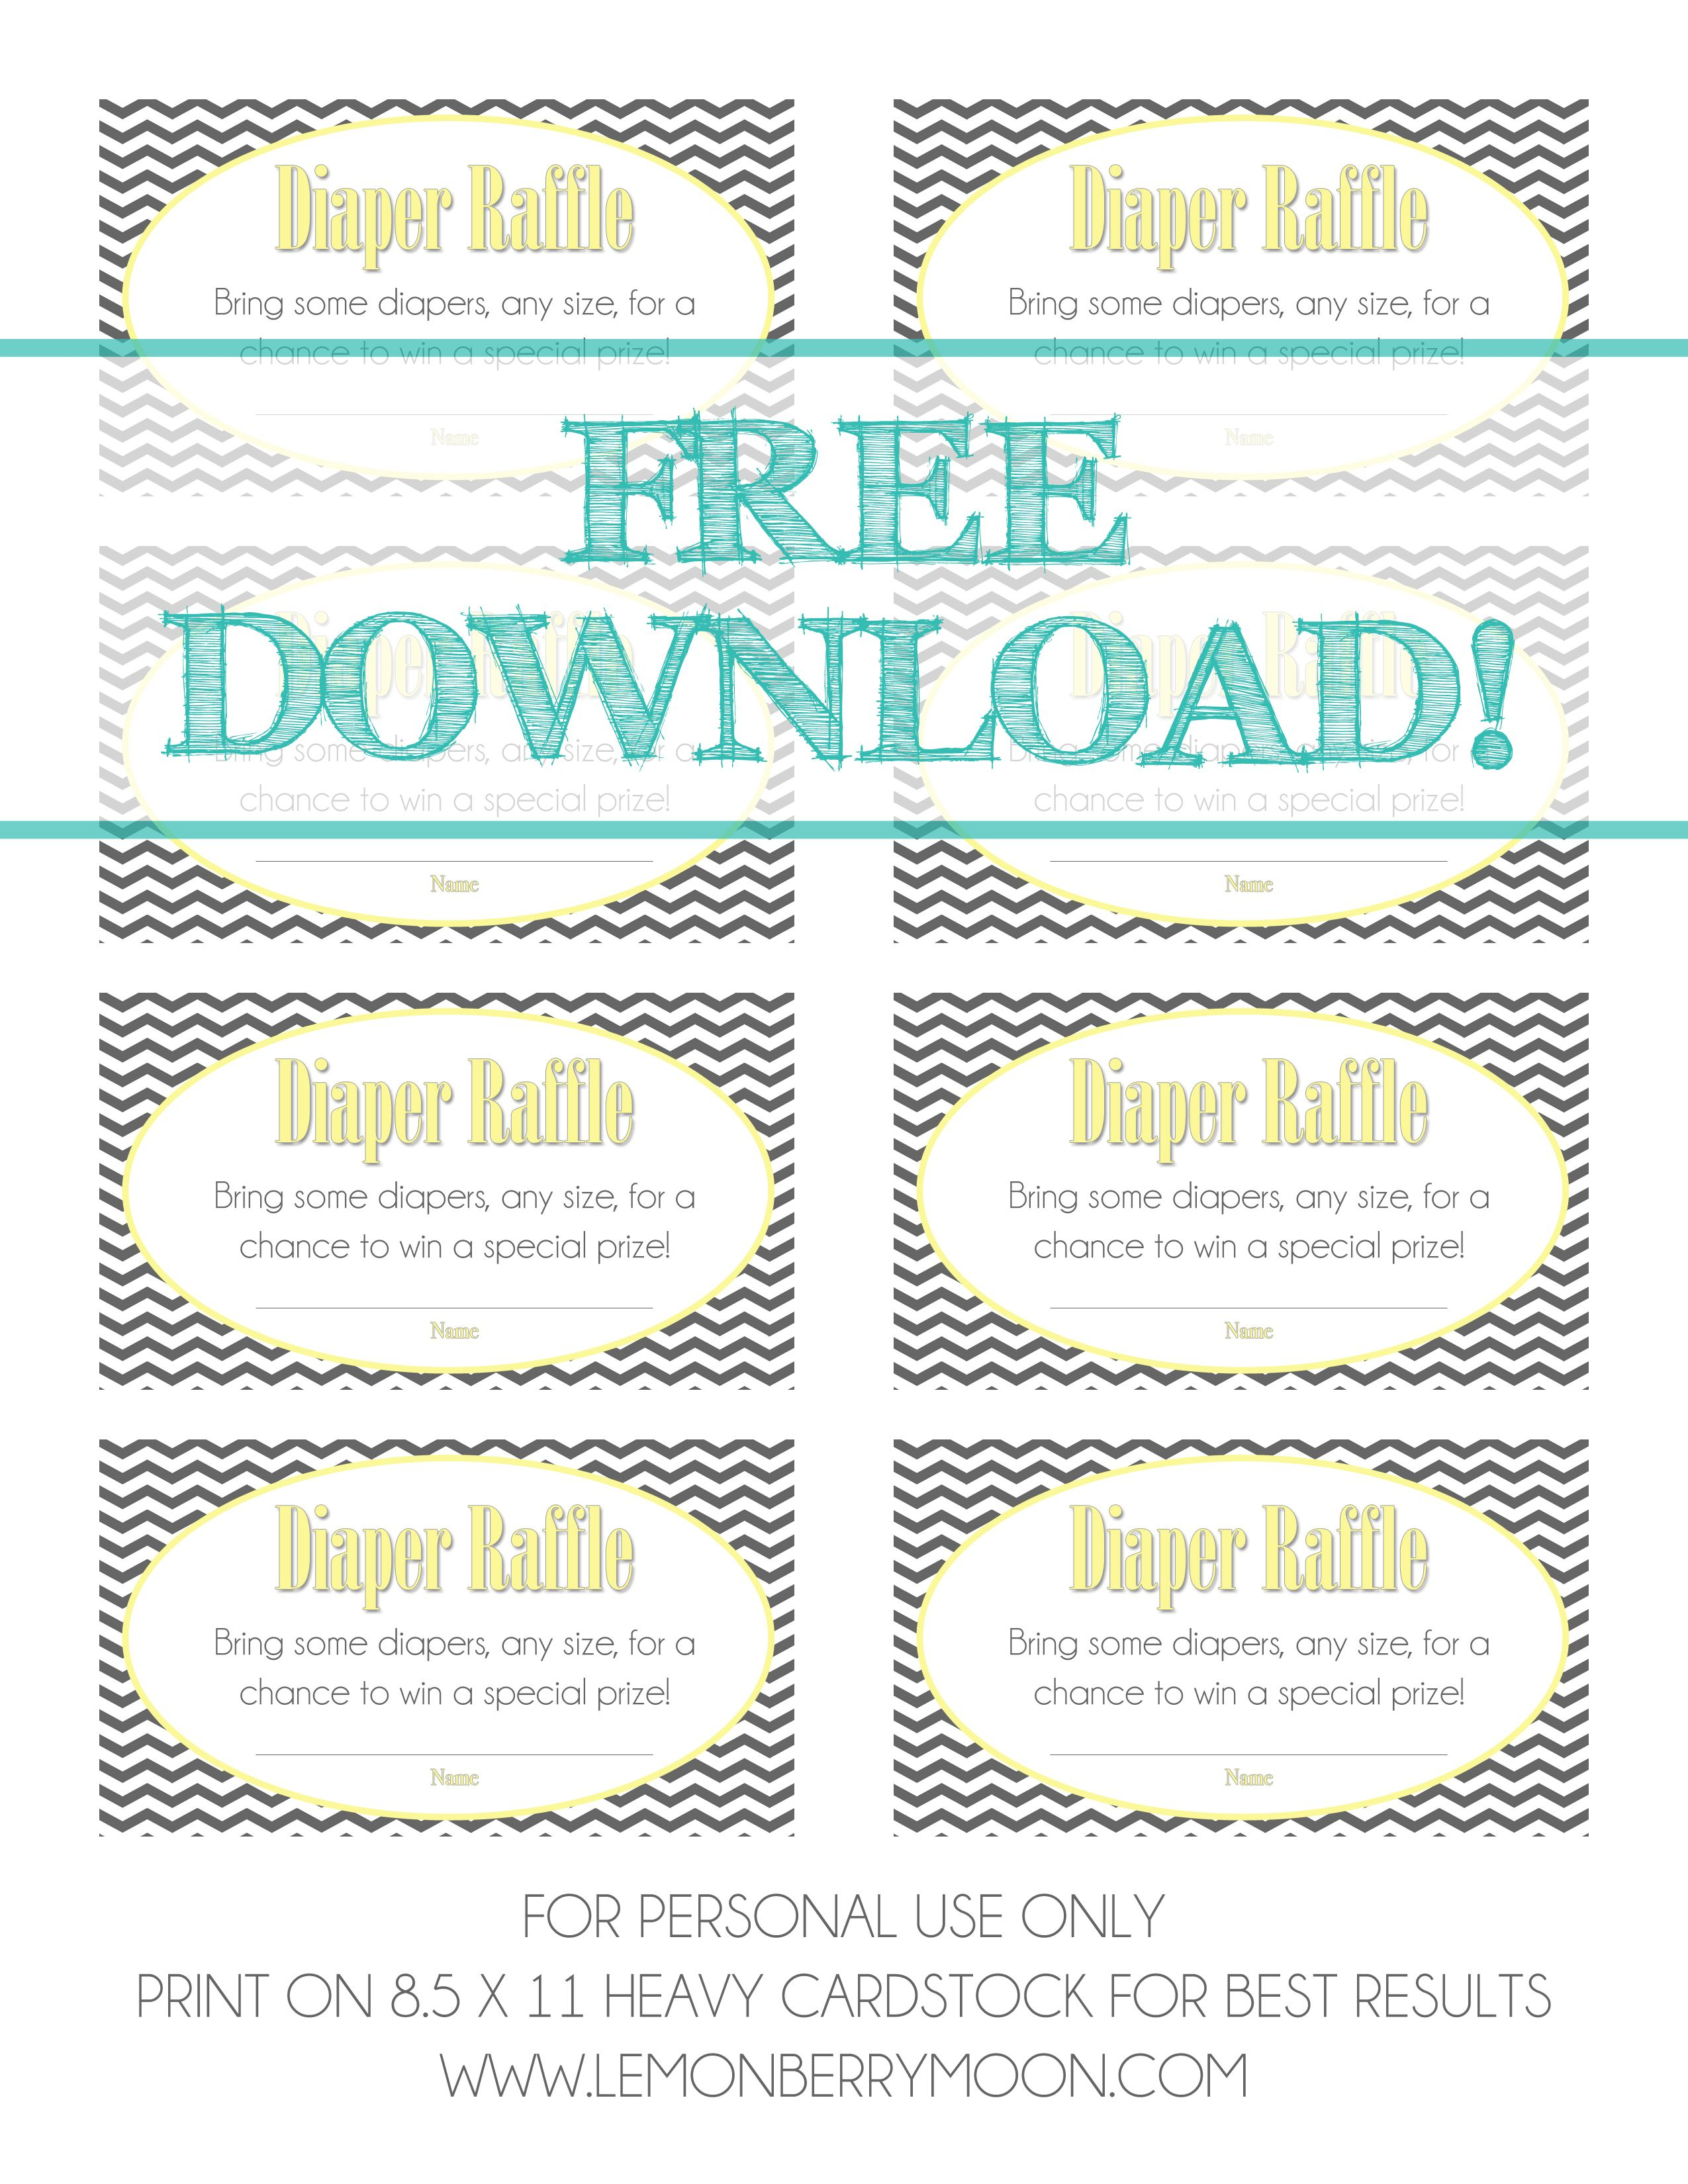 Free Download - Baby Diaper Raffle Template | Baaby Shower | Baby - Diaper Raffle Template Free Printable